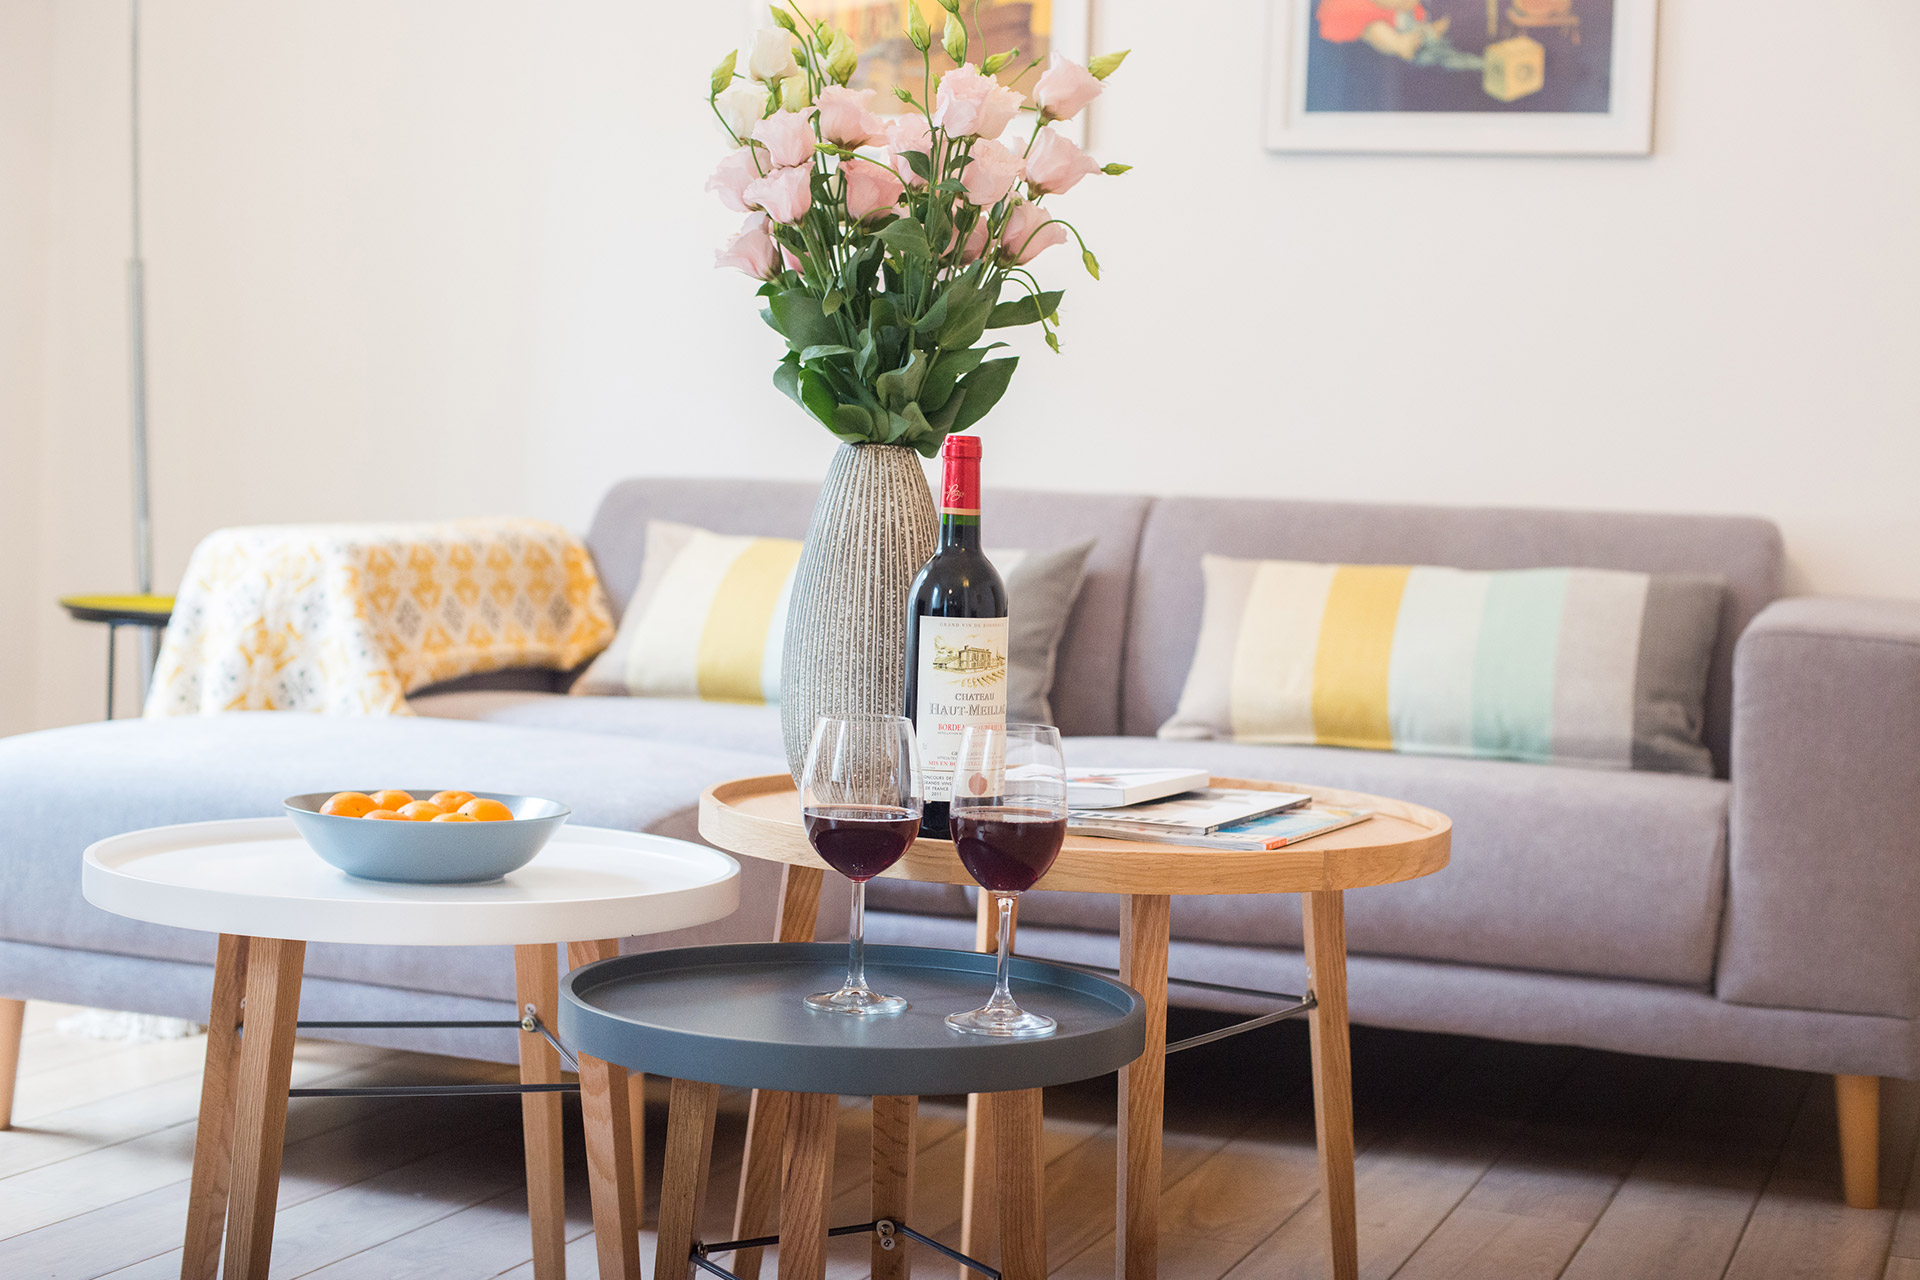 Put your feet up and enjoy a glass of wine in the living room of the Monplaisir vacation rental offered by Paris Perfect